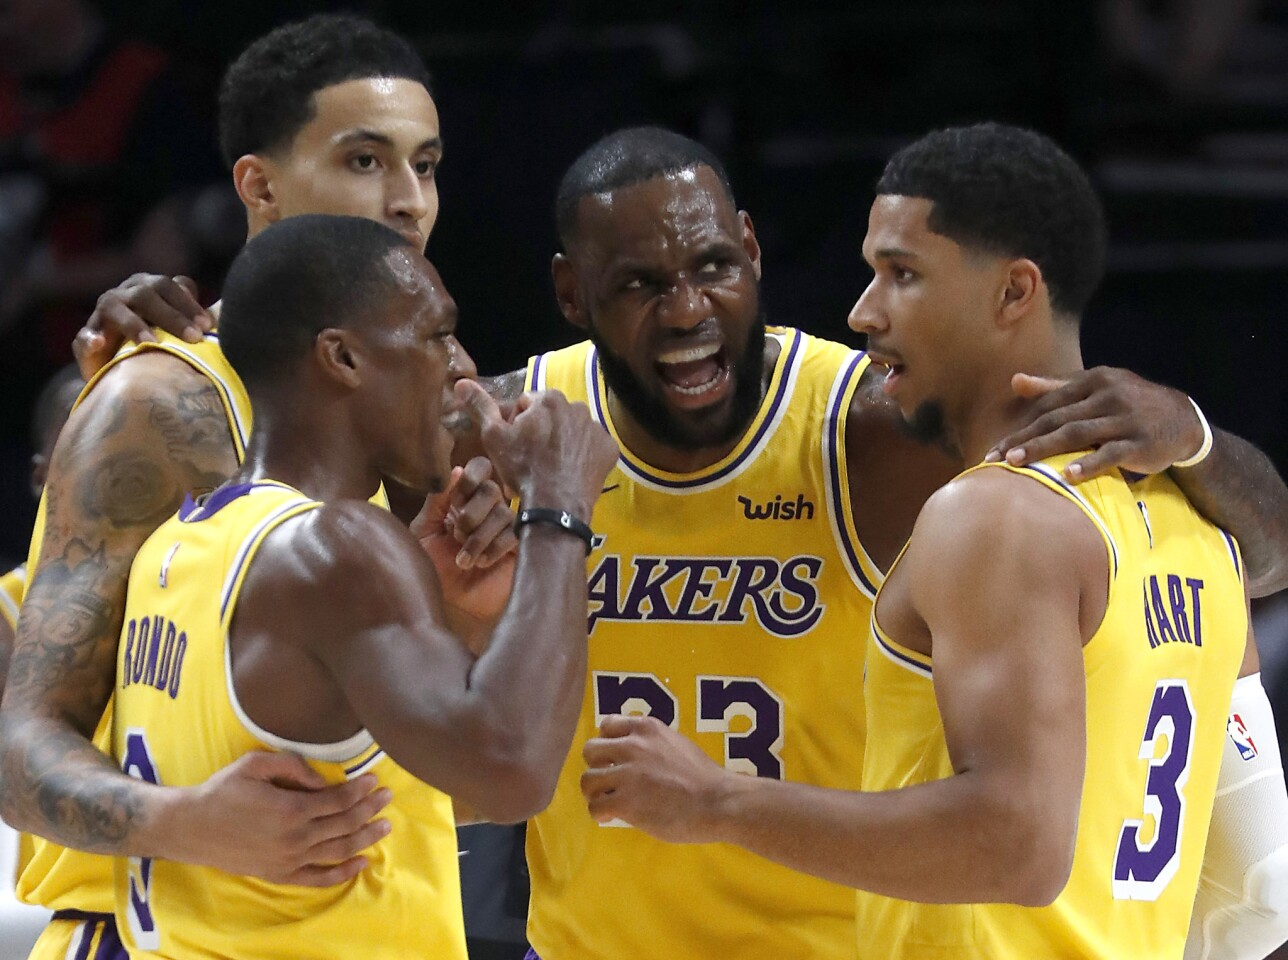 Lakers forward LeBron James huddles with his teammates during the season opener against the Trail Blazers.